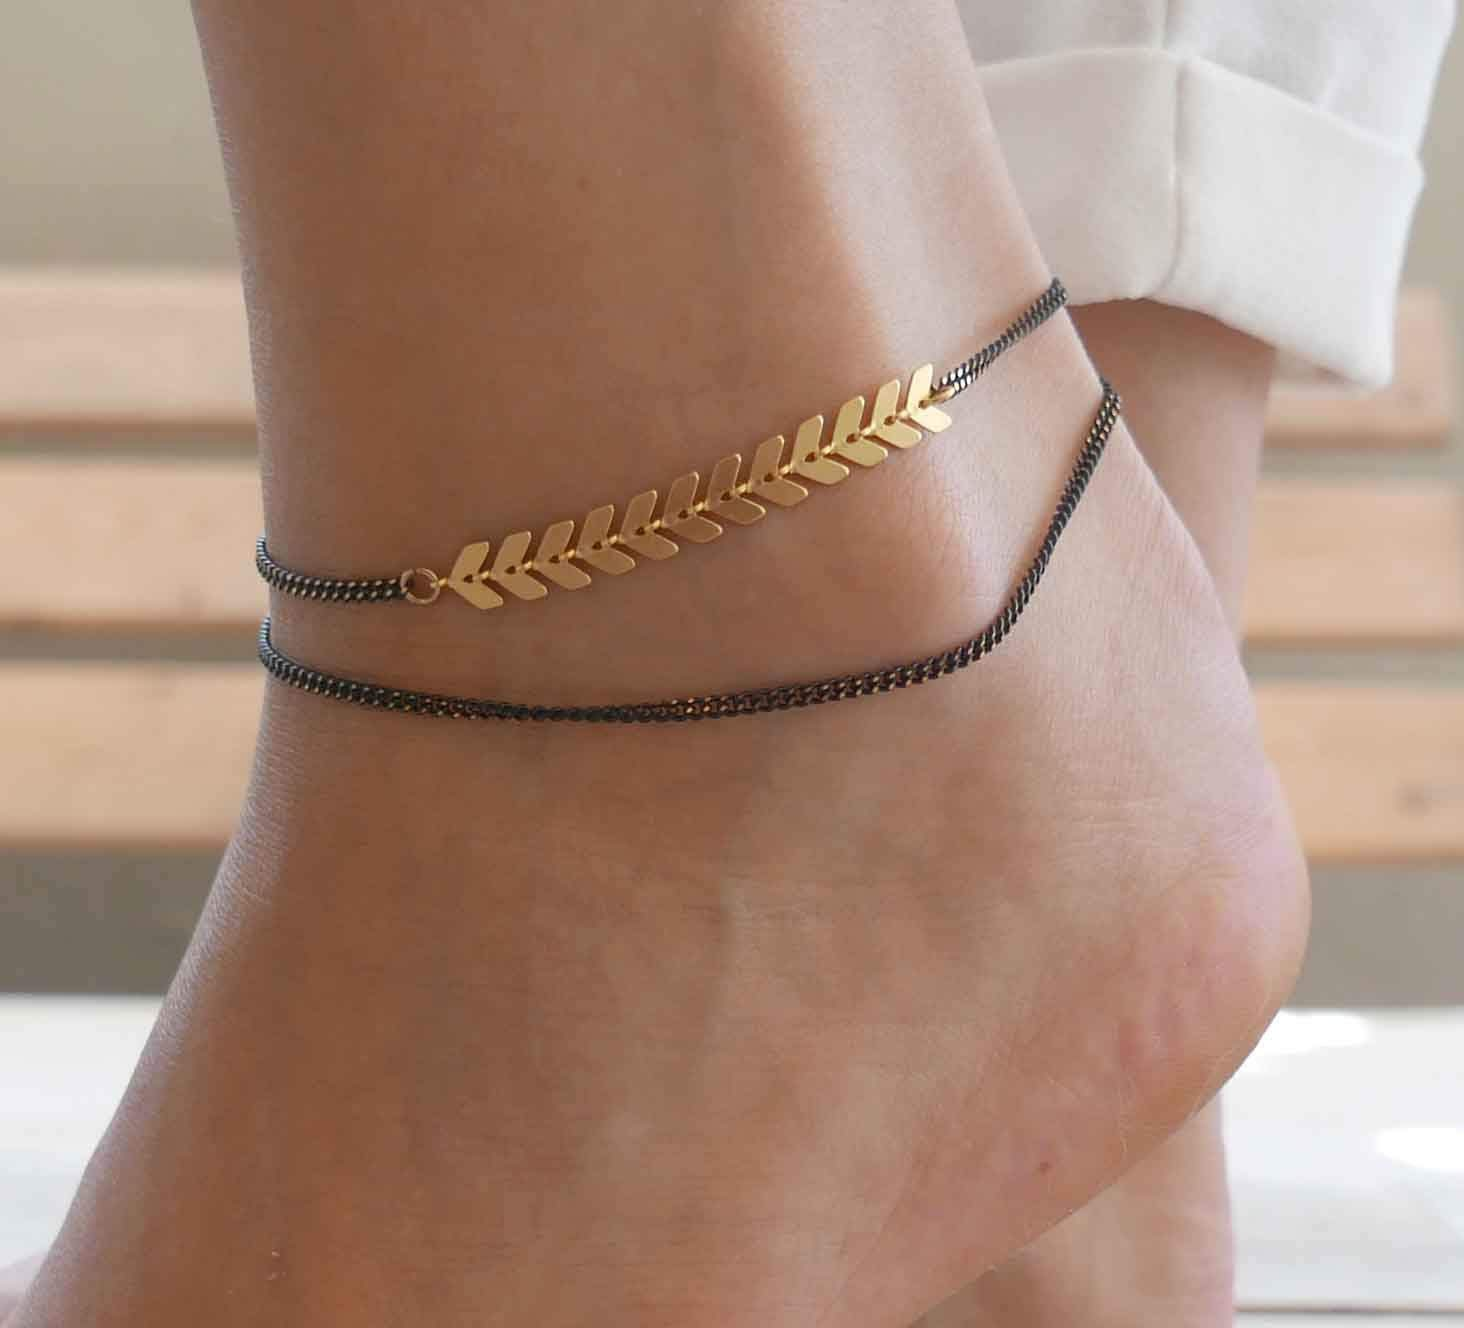 Handmade Black Anklet For Women Set With Gold Arrow Chain By Galis Jewelry - Gold Ankle Bracelet For Women - Arrow Anklet - Arrow Ankle Bracelet